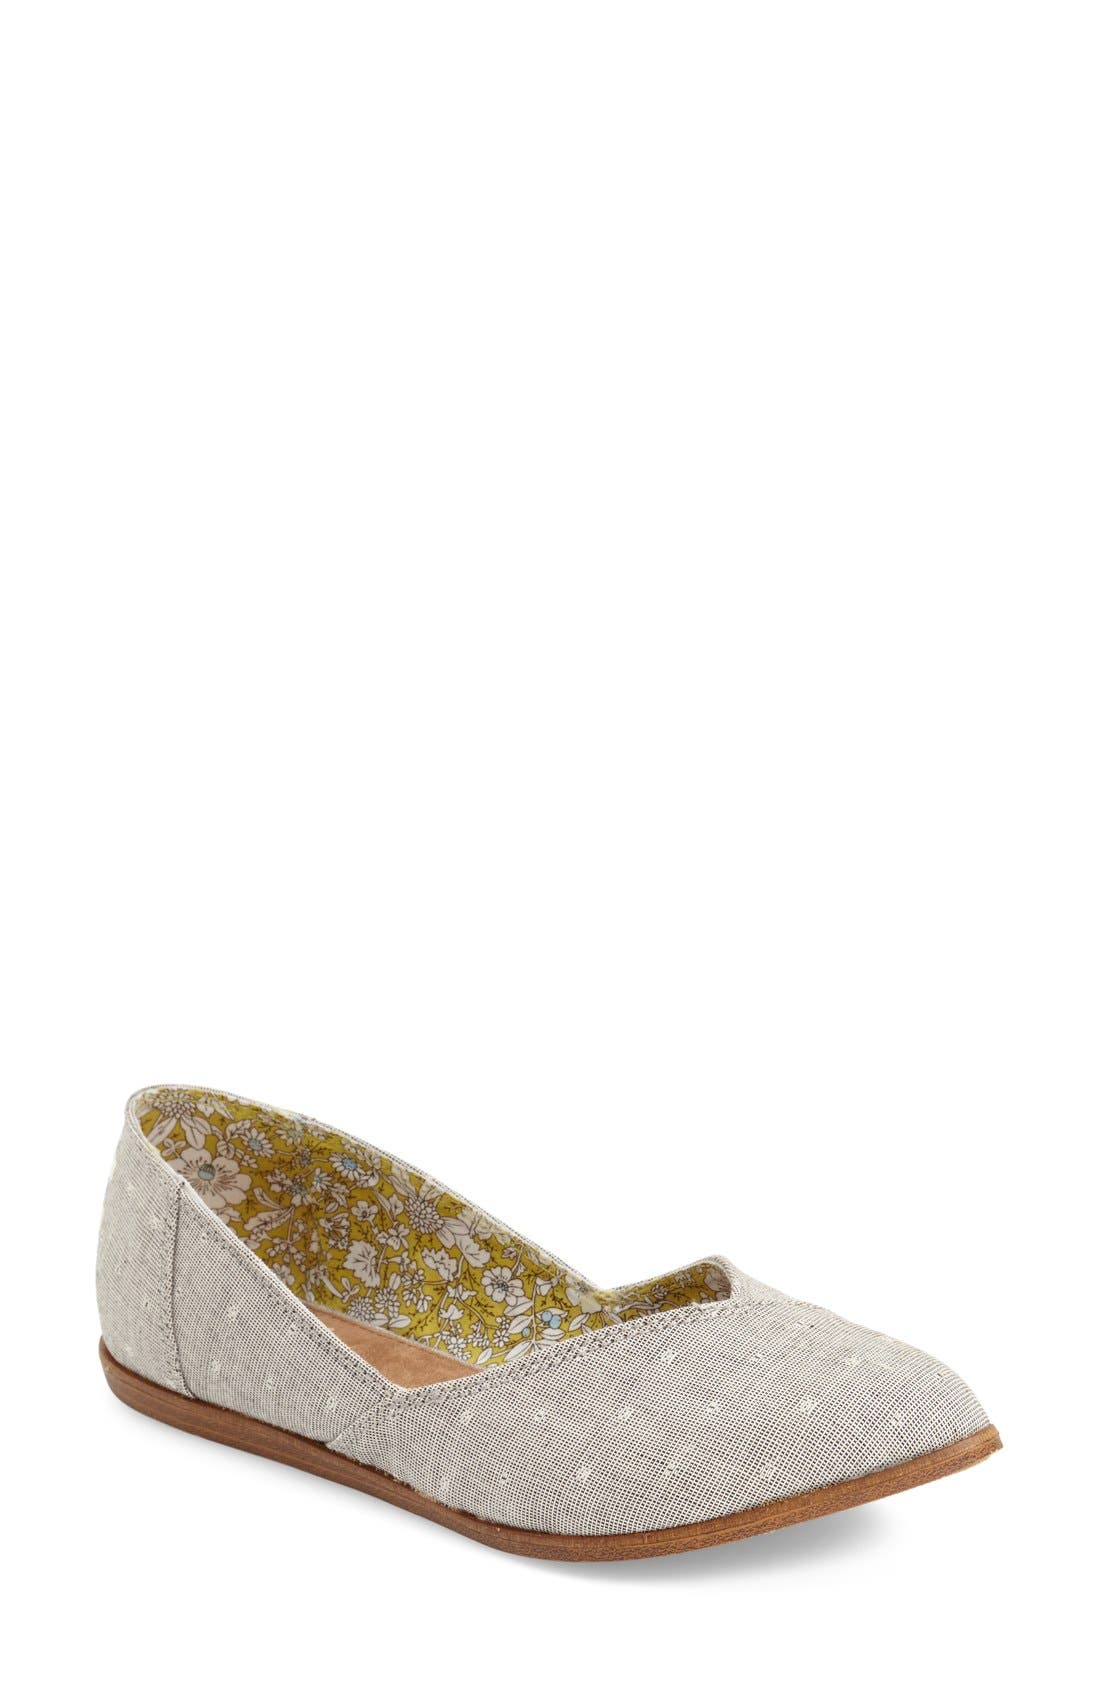 'Jutti' Chambray Flat,                             Main thumbnail 1, color,